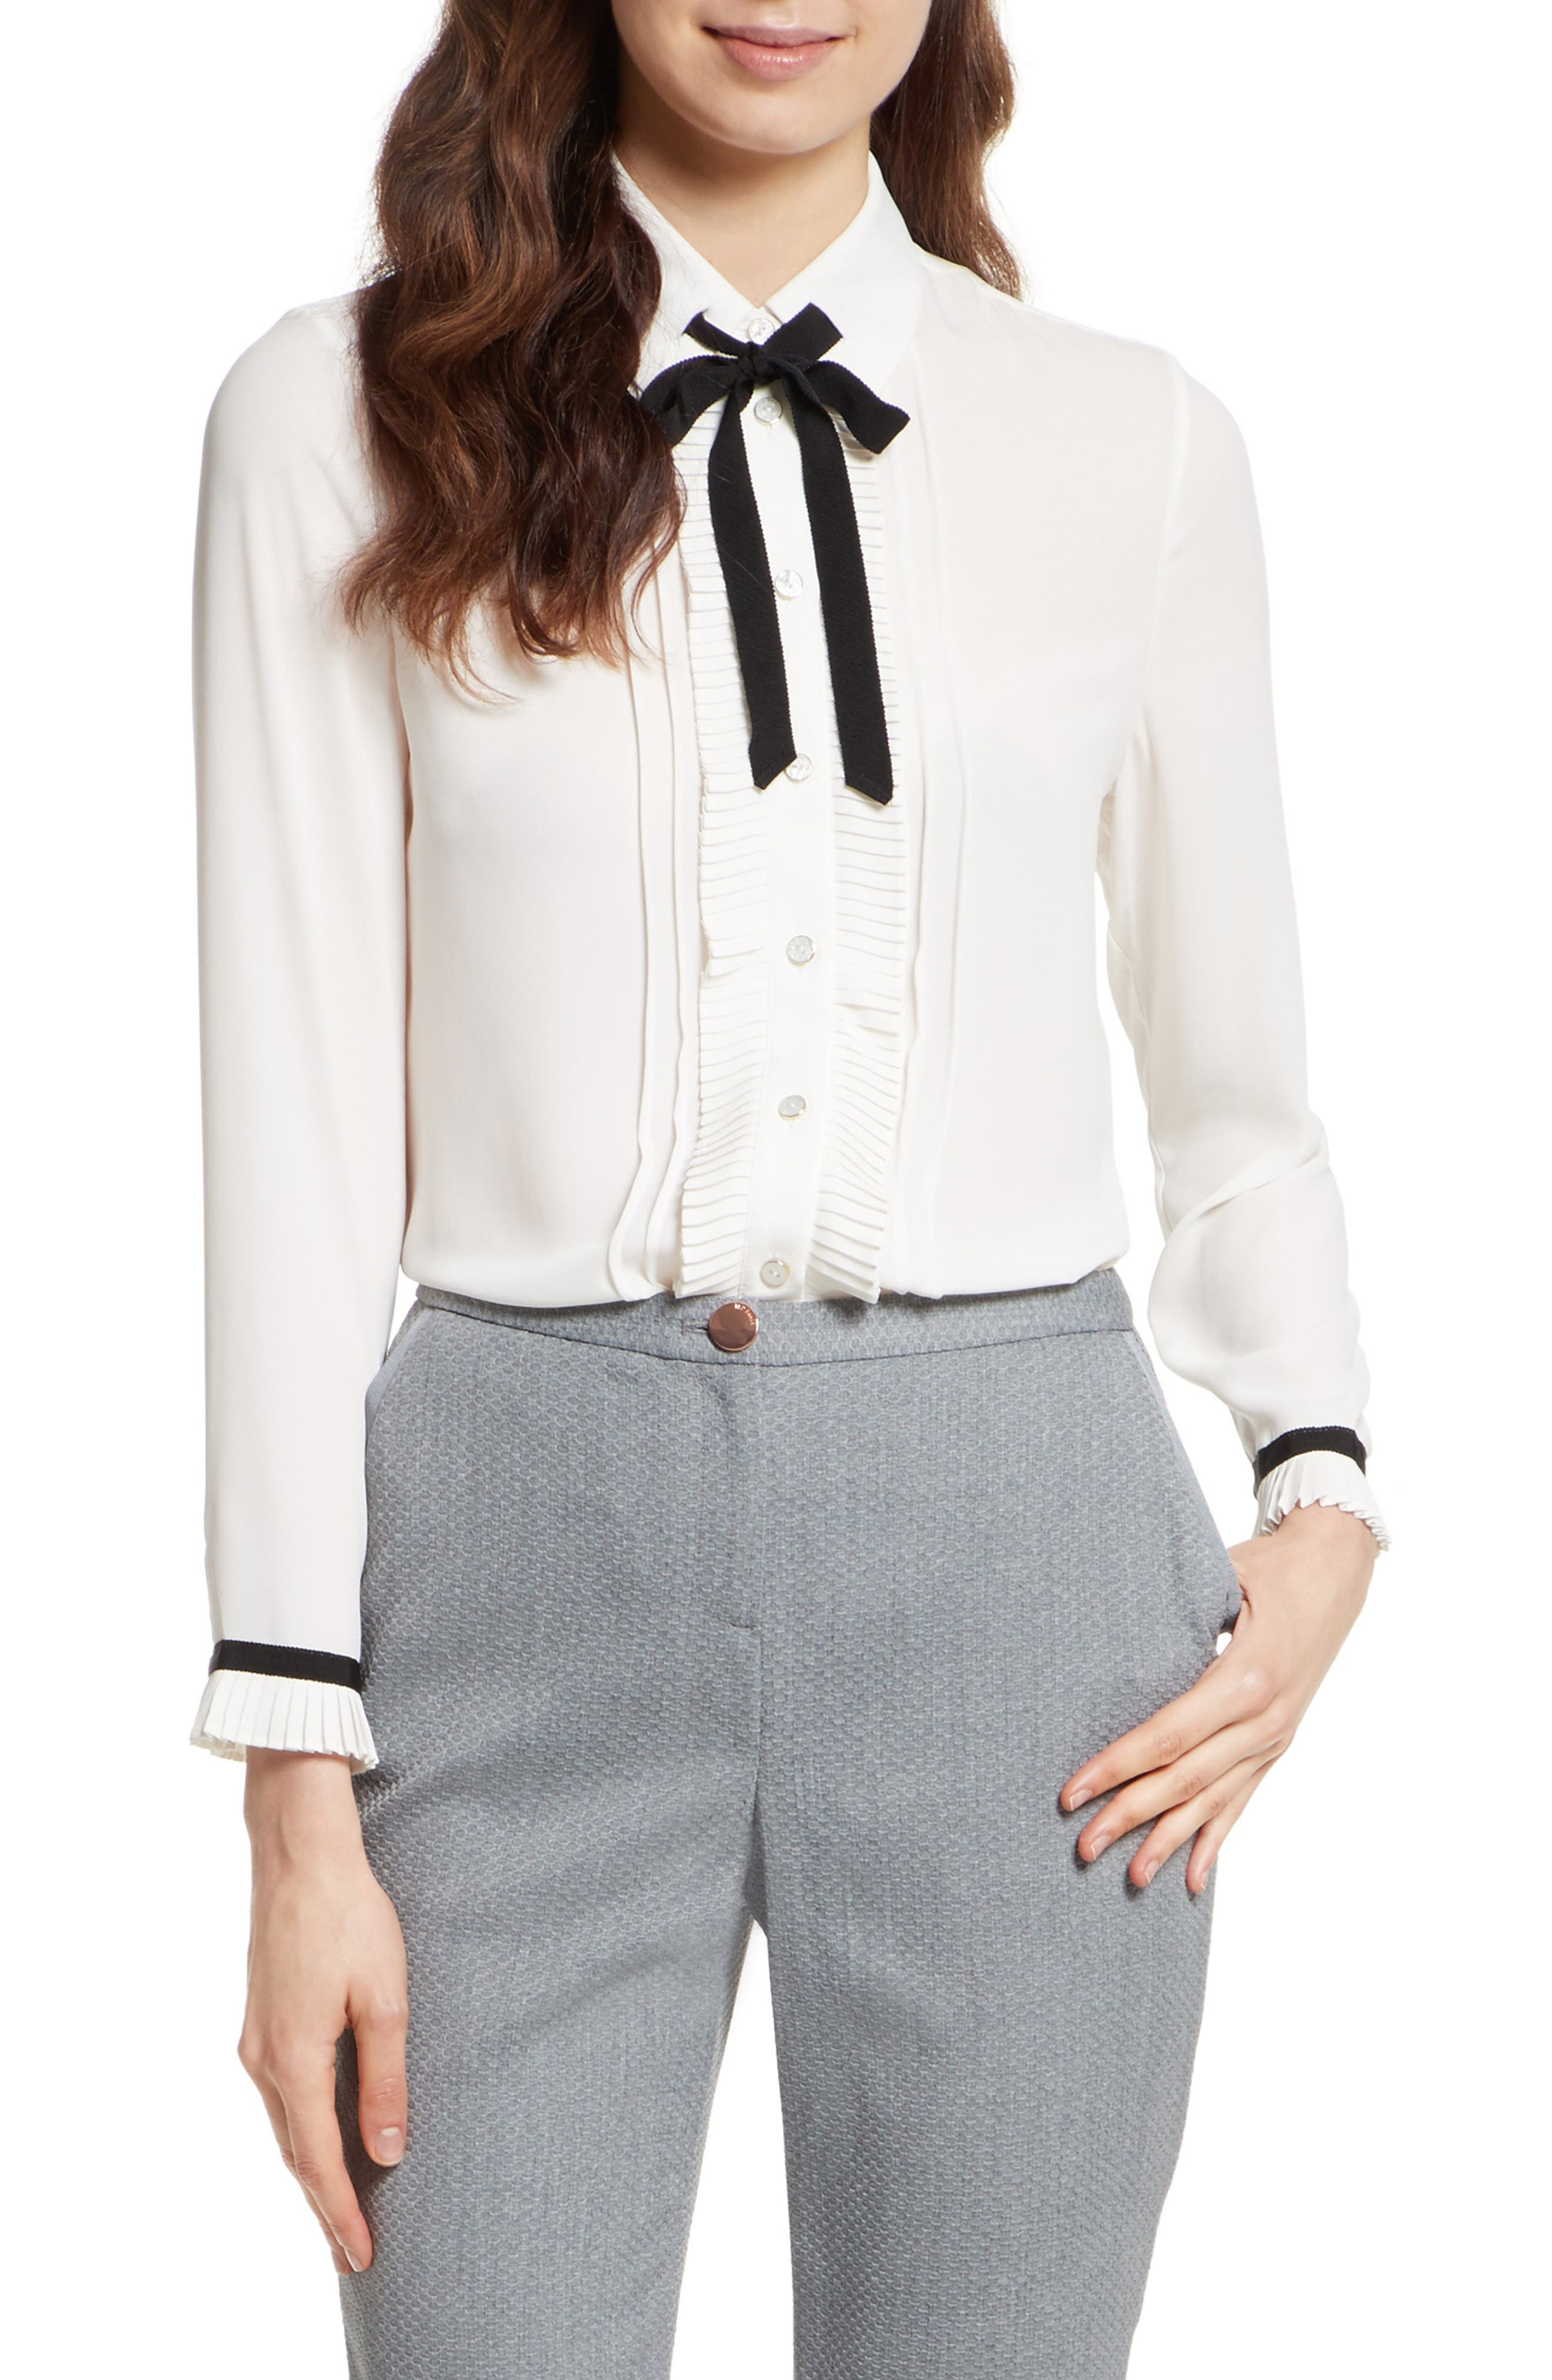 Alternate Image 1 Selected - Ted Baker London Pleated Frill Tie Neck Shirt